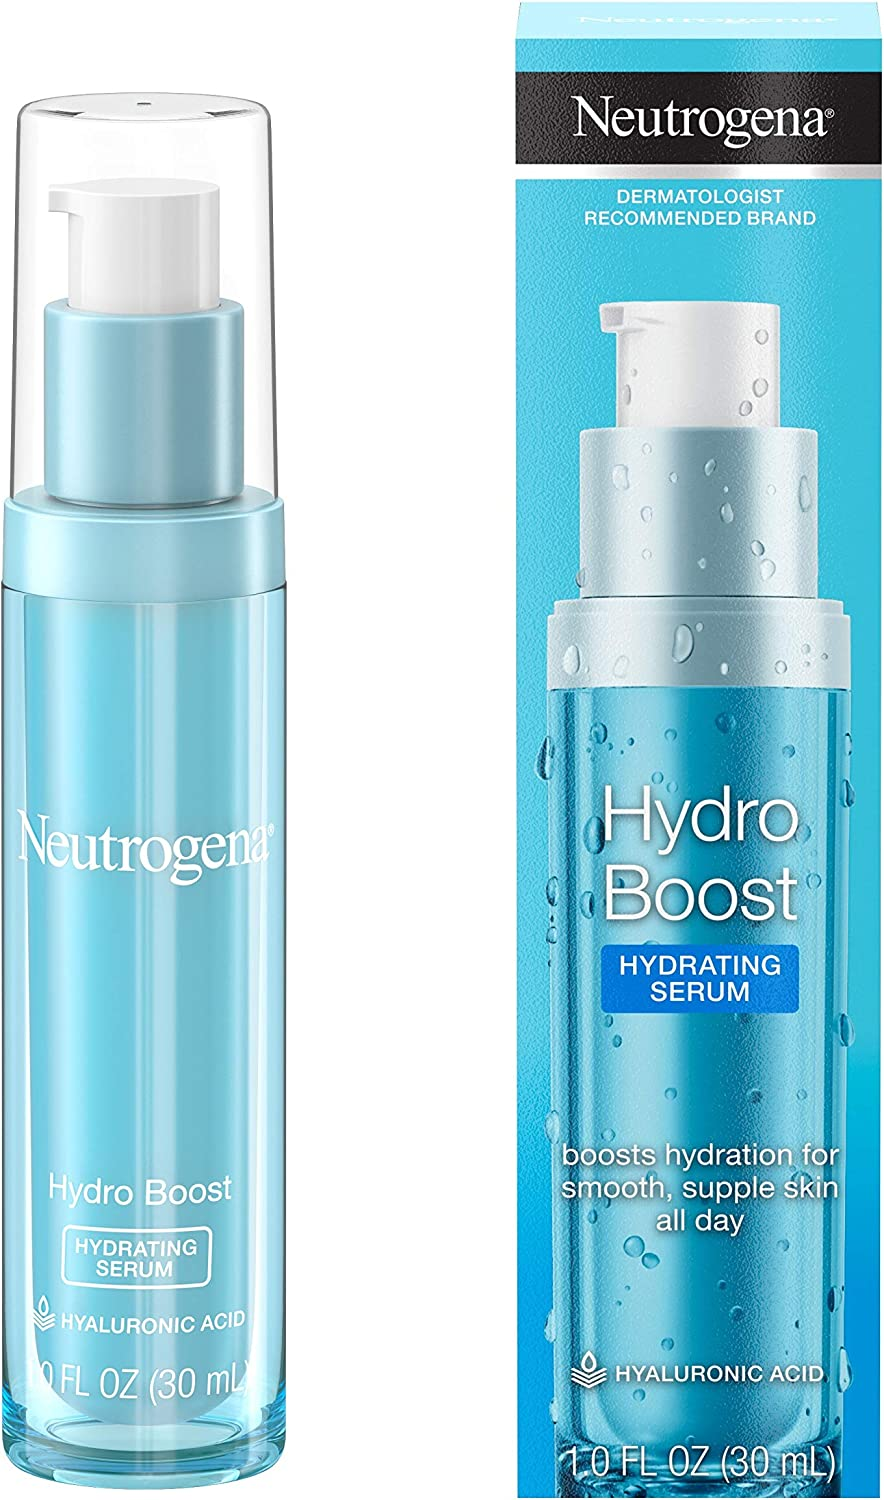 Neutrogena Hydro Boost Hydrating Serum 1 Fl Oz Amazon Ca Beauty